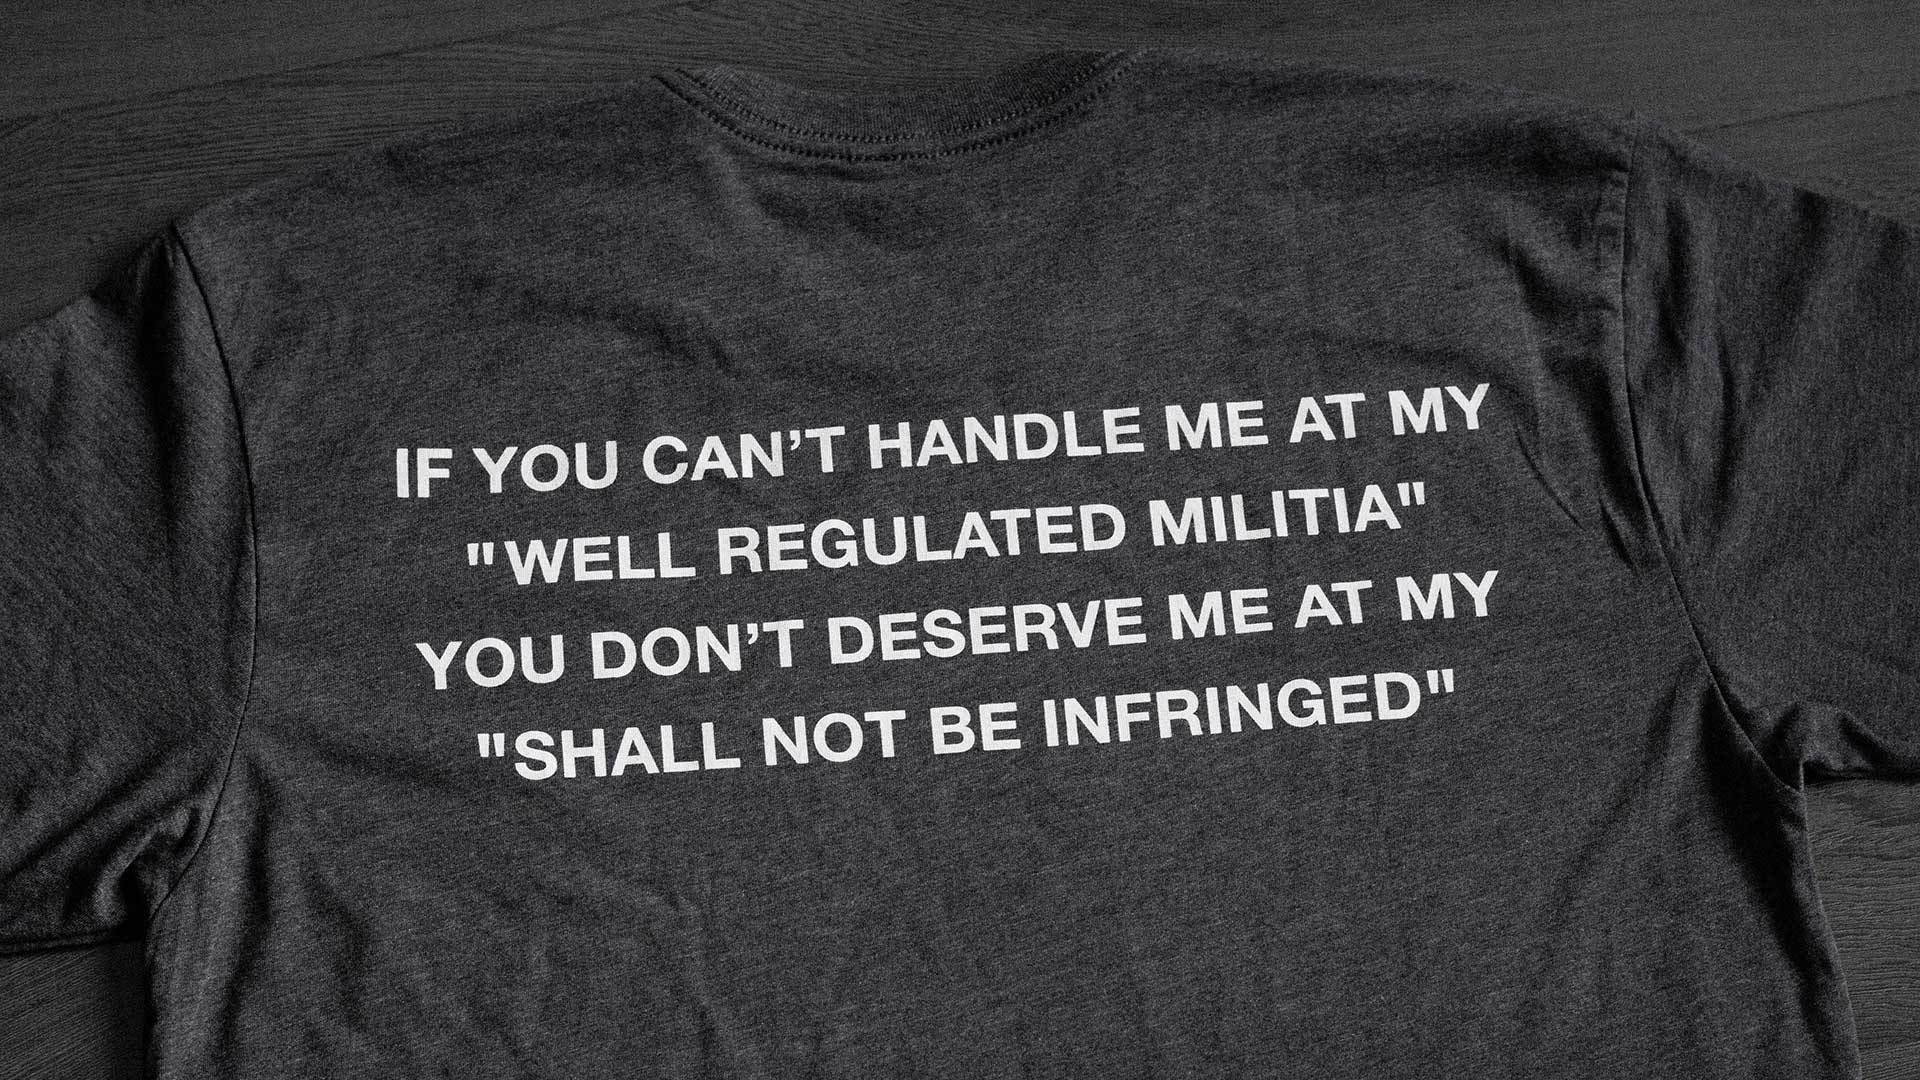 Pro-Second Amendment T-Shirt Detail 2